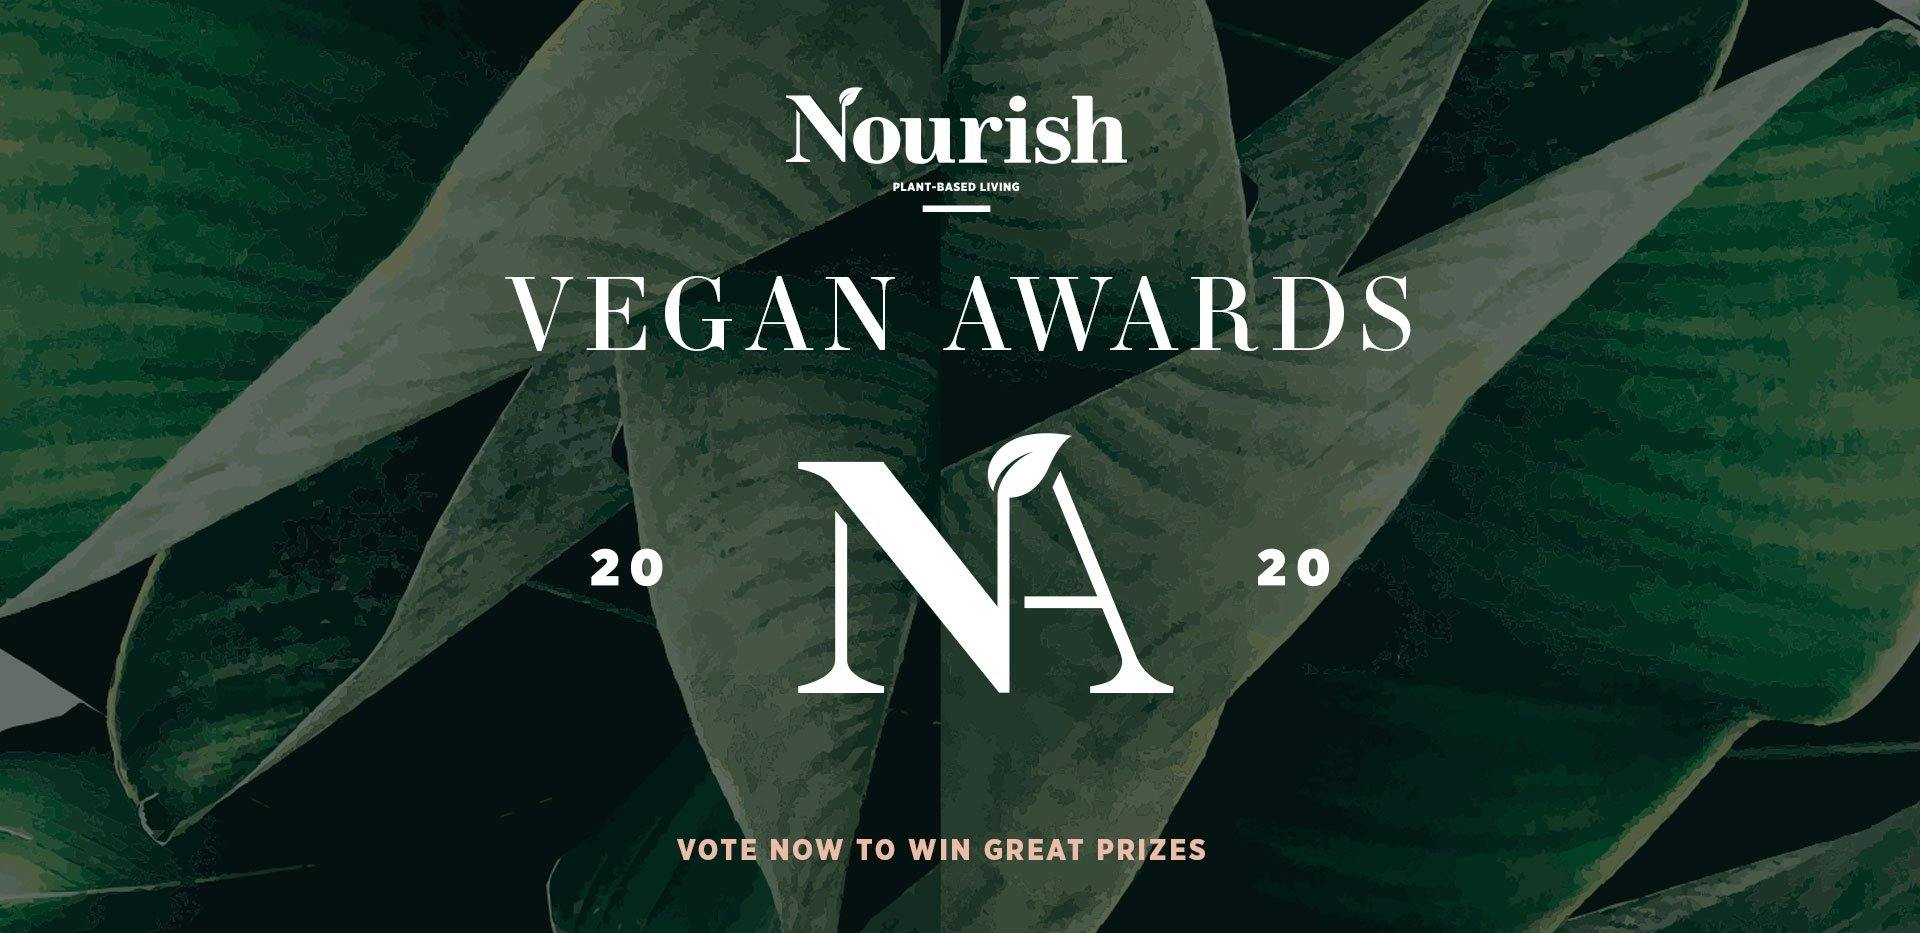 Nominee, Nourish Vegan Awards | 2020 - Merry People US